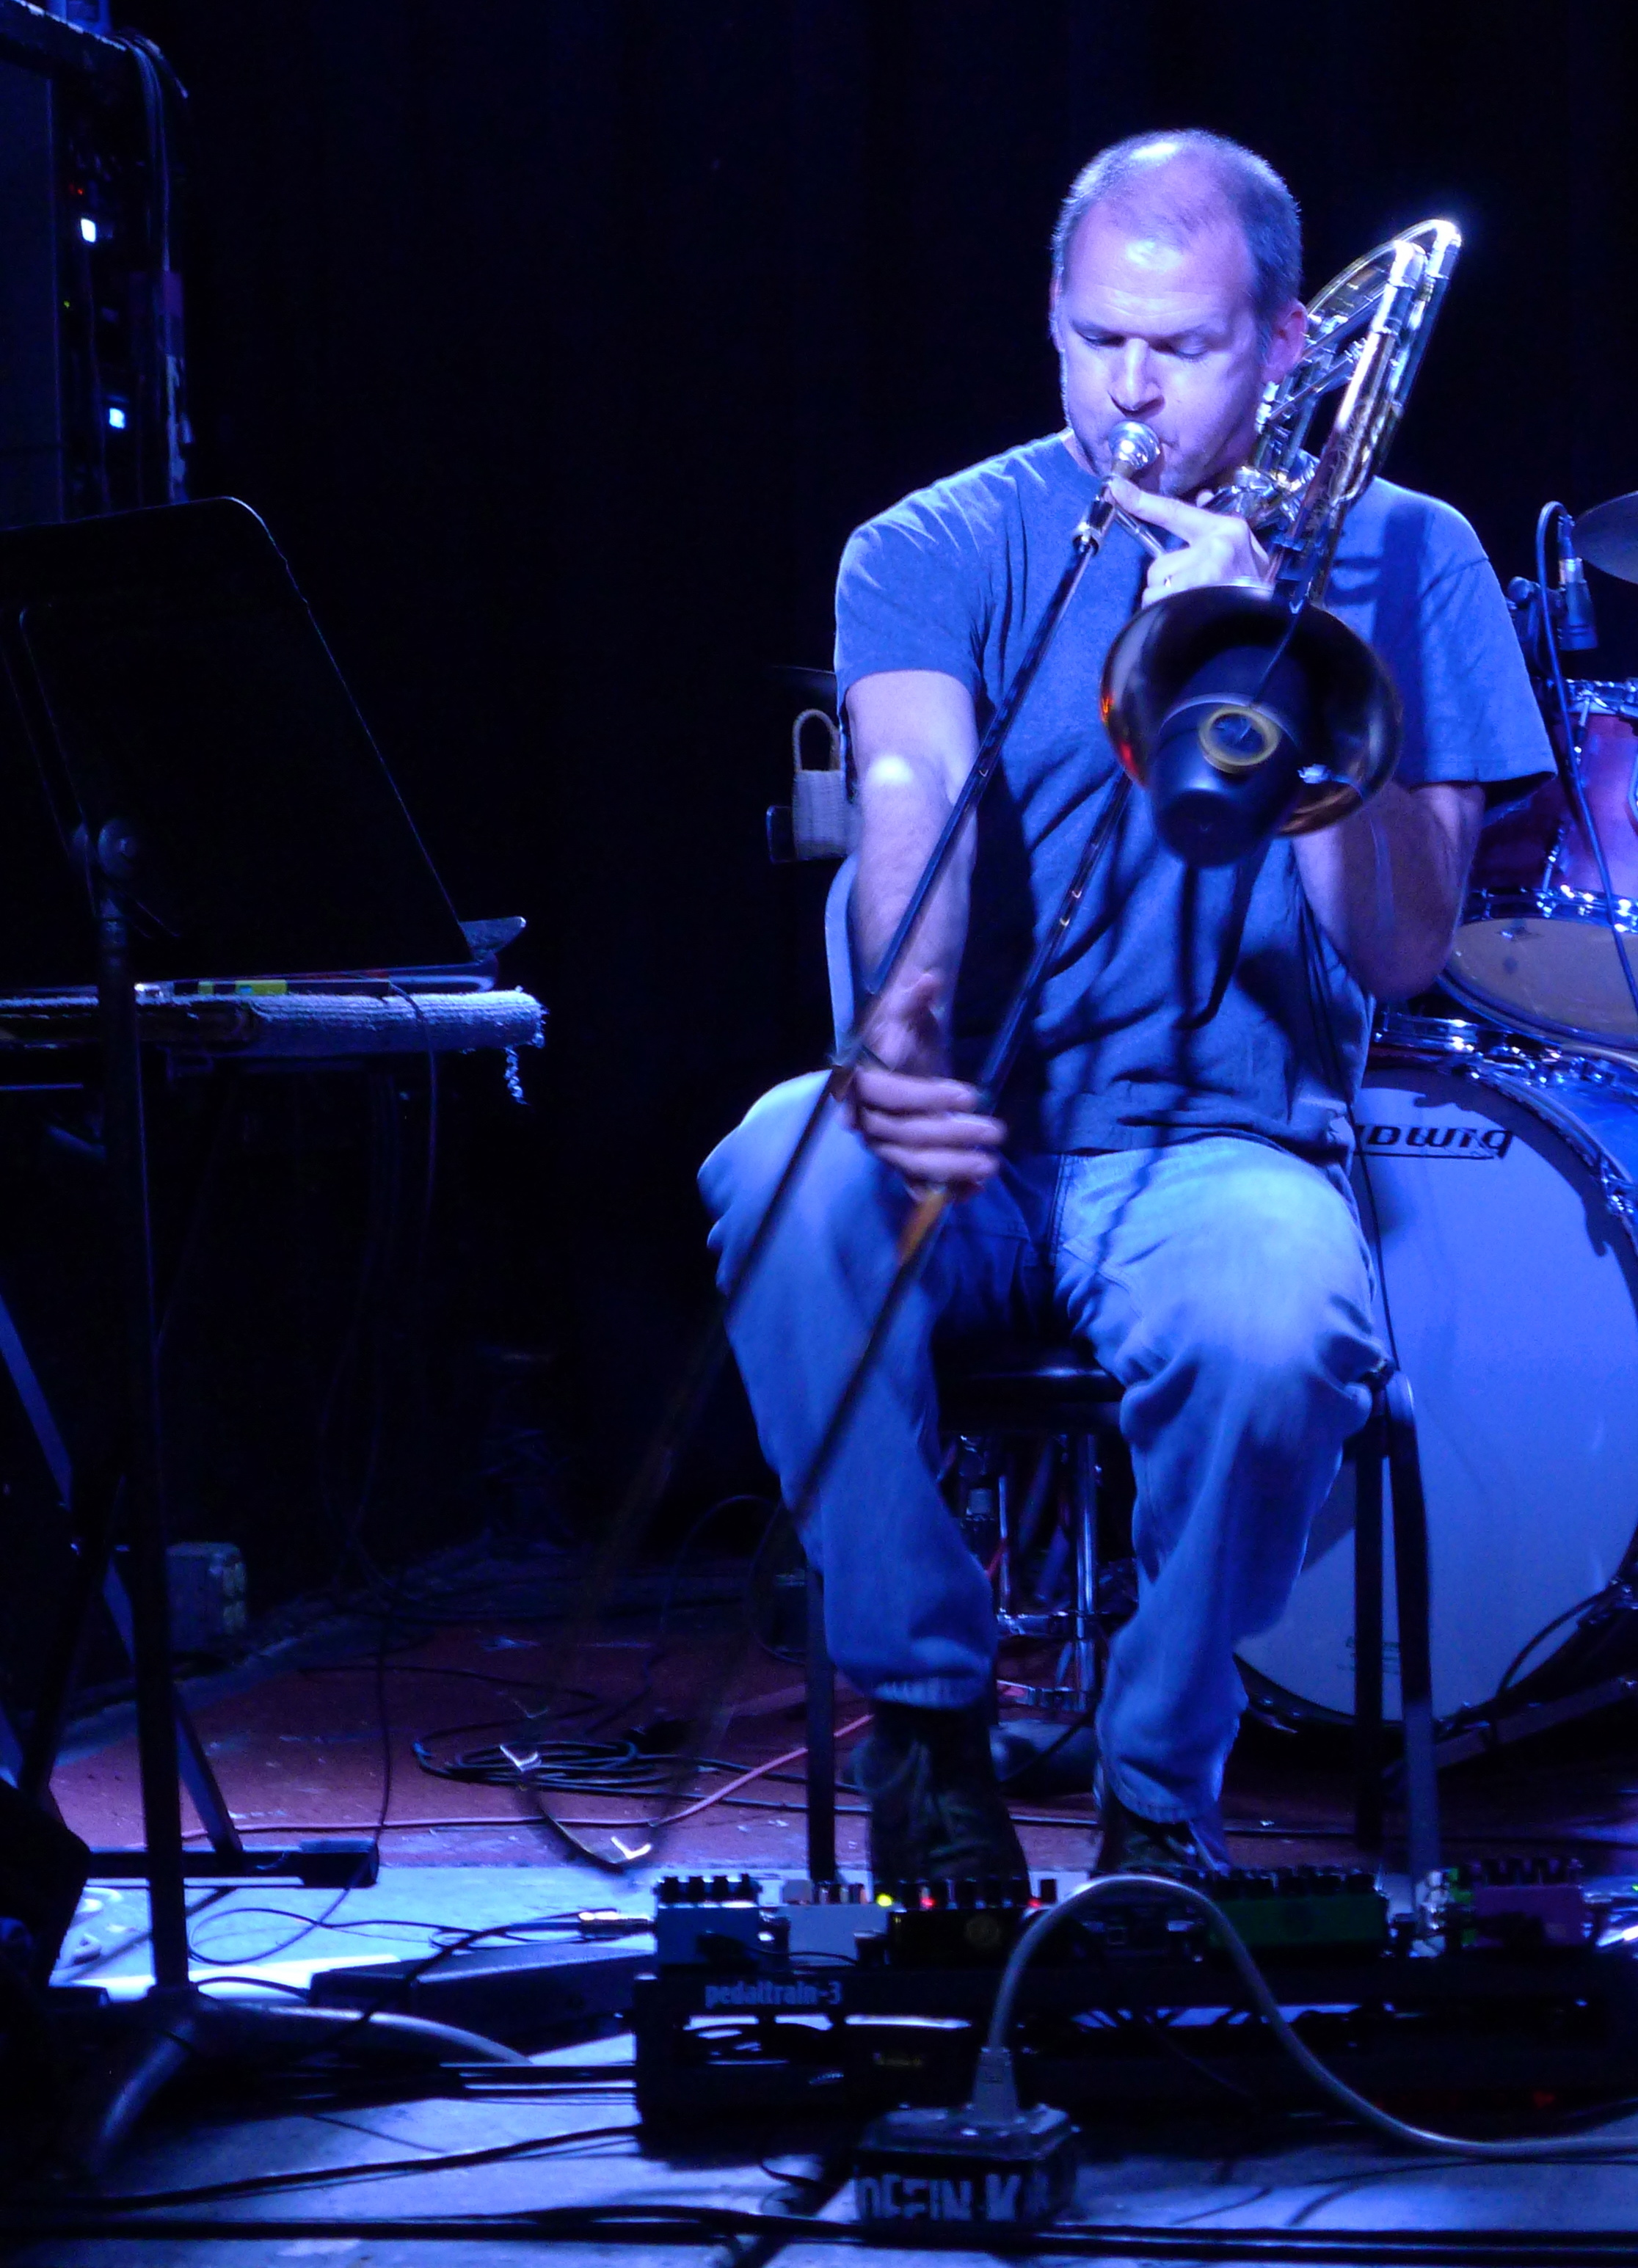 Playing Electric Trombone at The Frequency- Madison, WI (photo by Angela Villa)